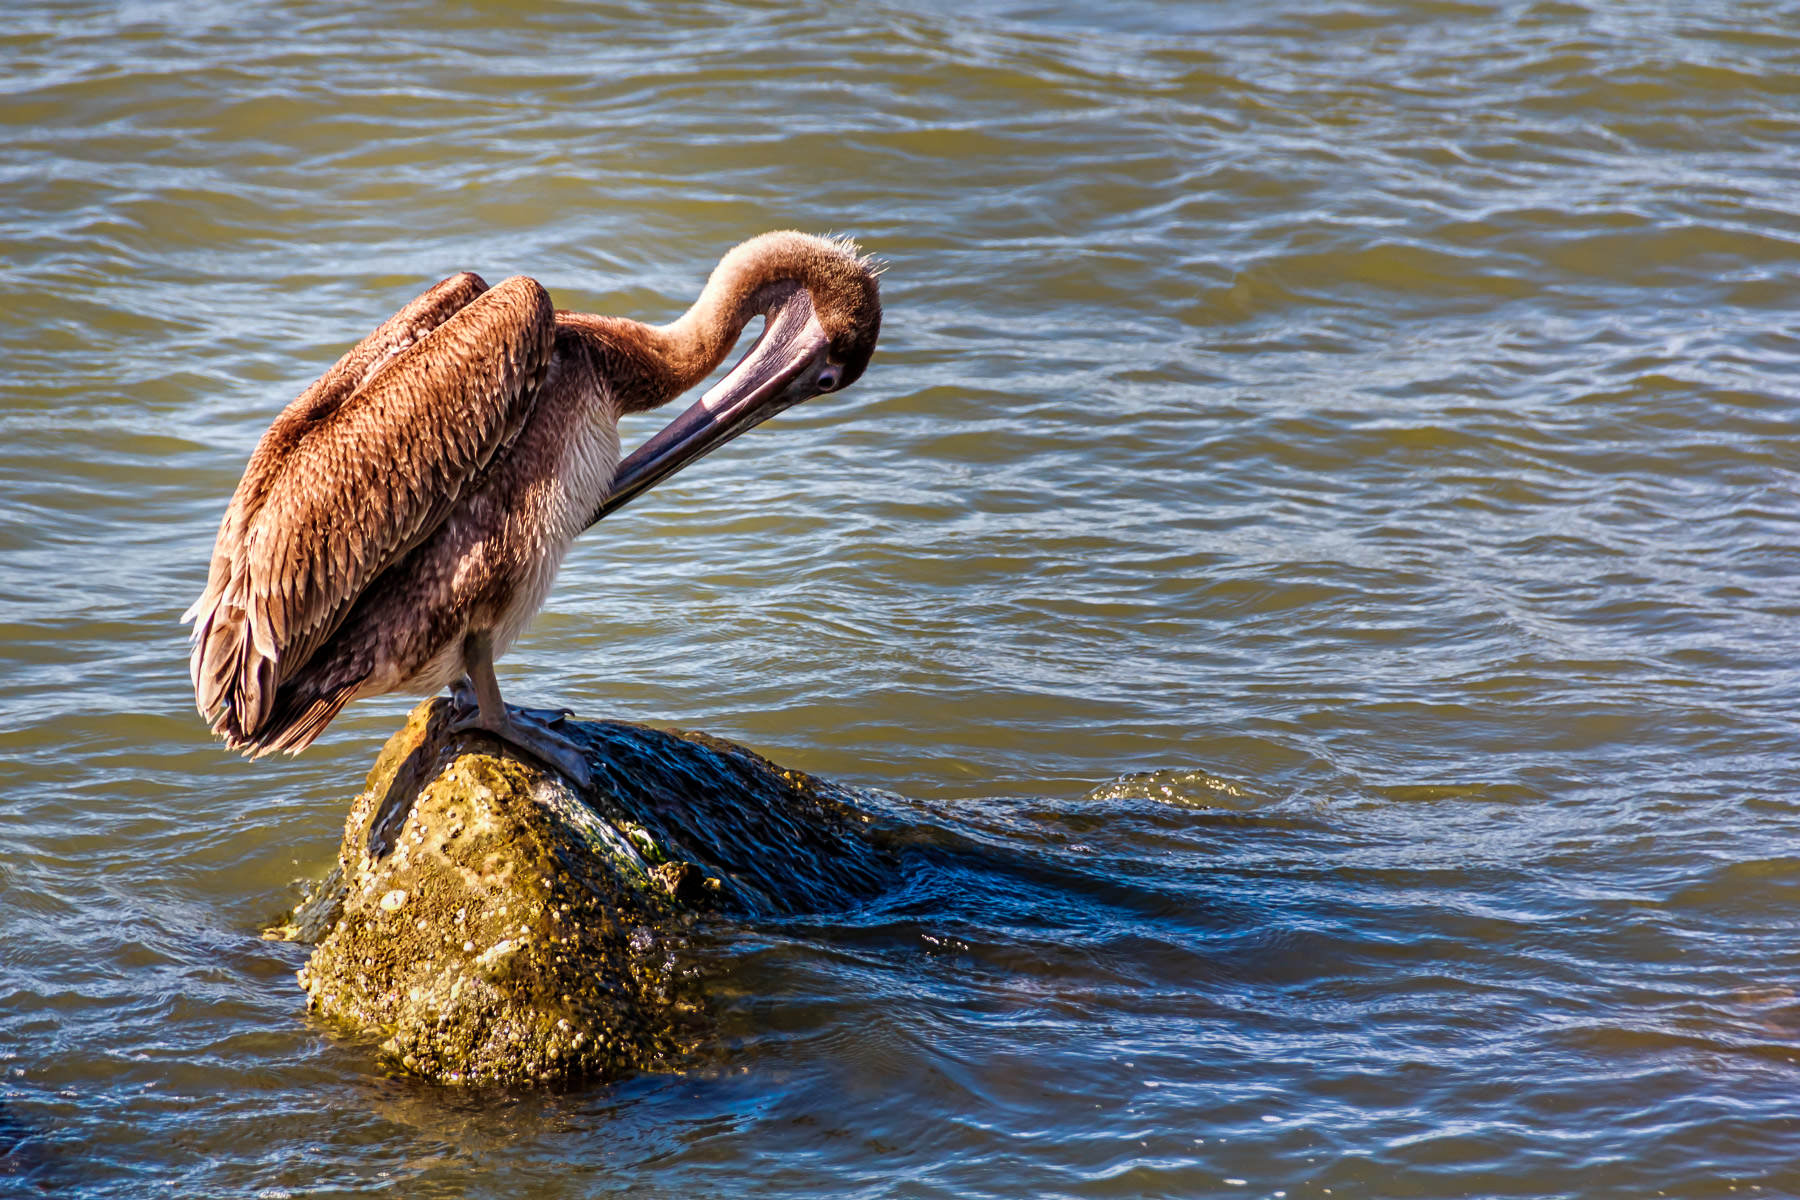 A pelican cleans his feathers along the waterfront at the Port of Galveston, Texas.